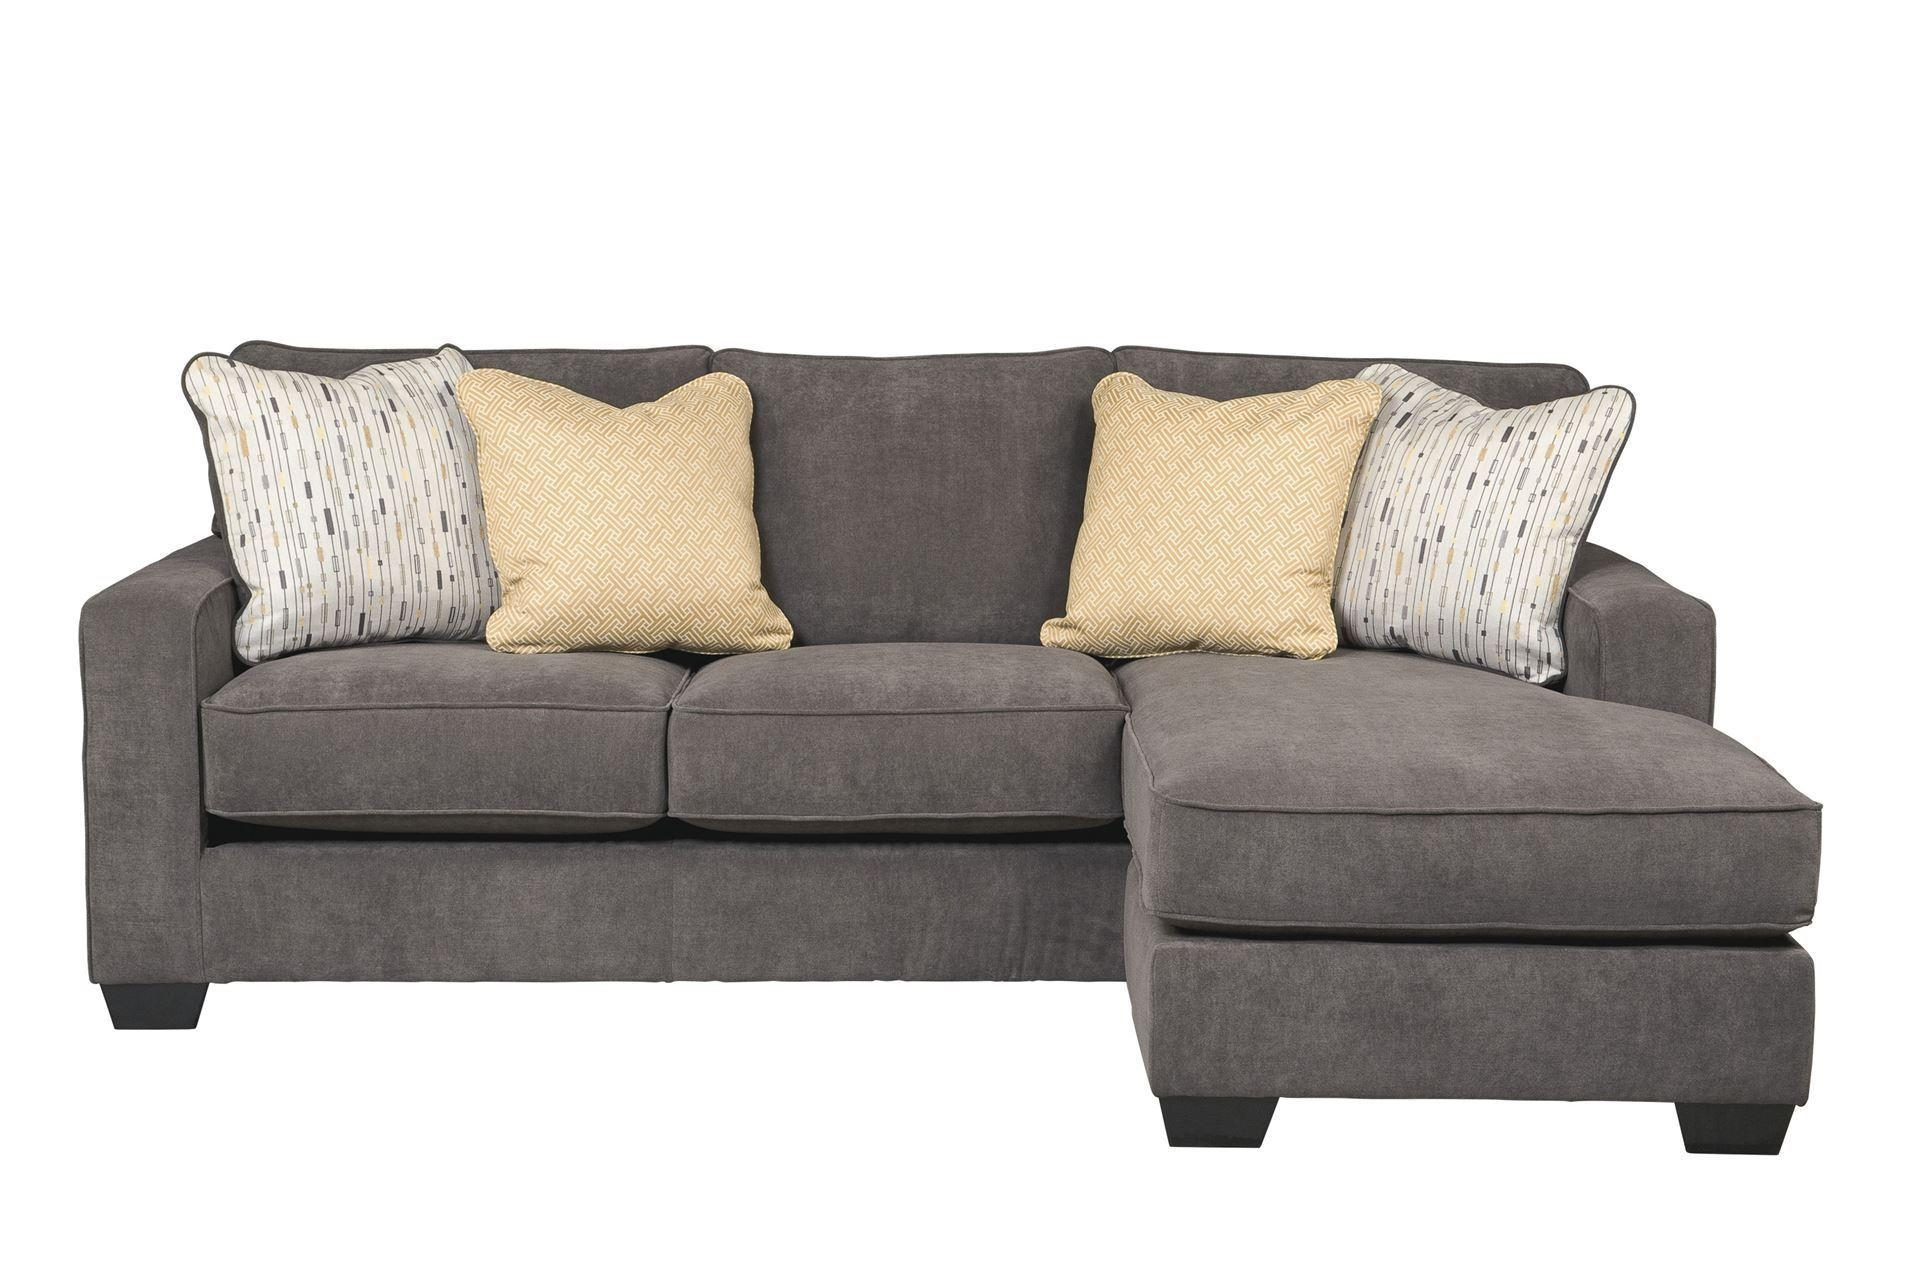 Bridgeport Sofa | Sofa Gallery | Kengire For Bridgeport Sofas (Image 4 of 20)